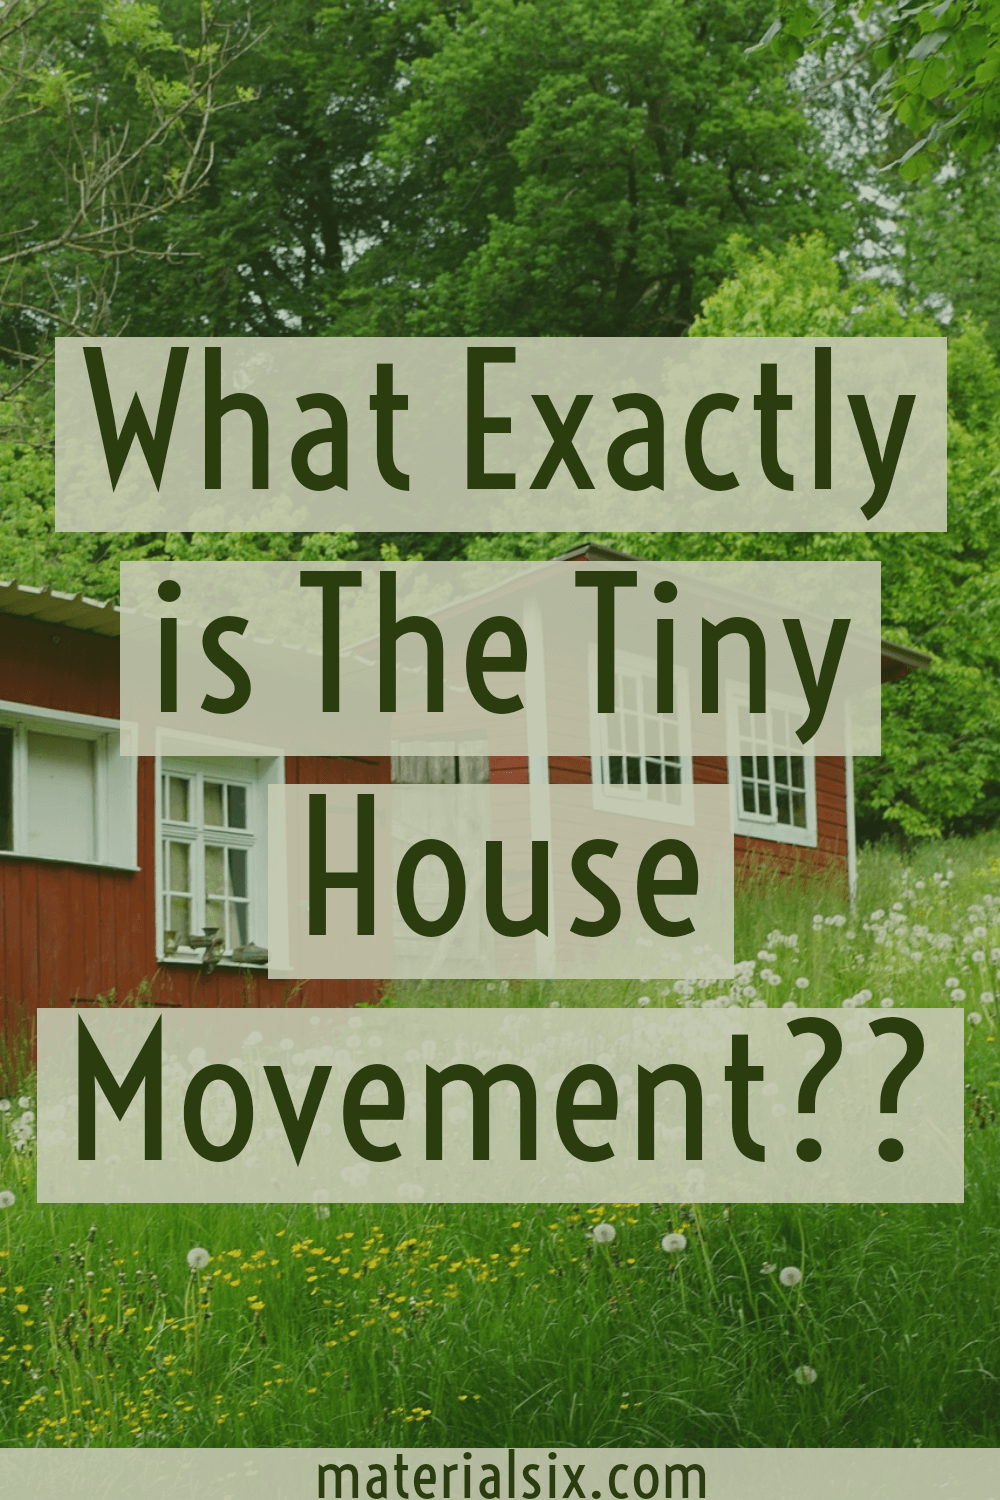 What exactly is the tiny house movement?